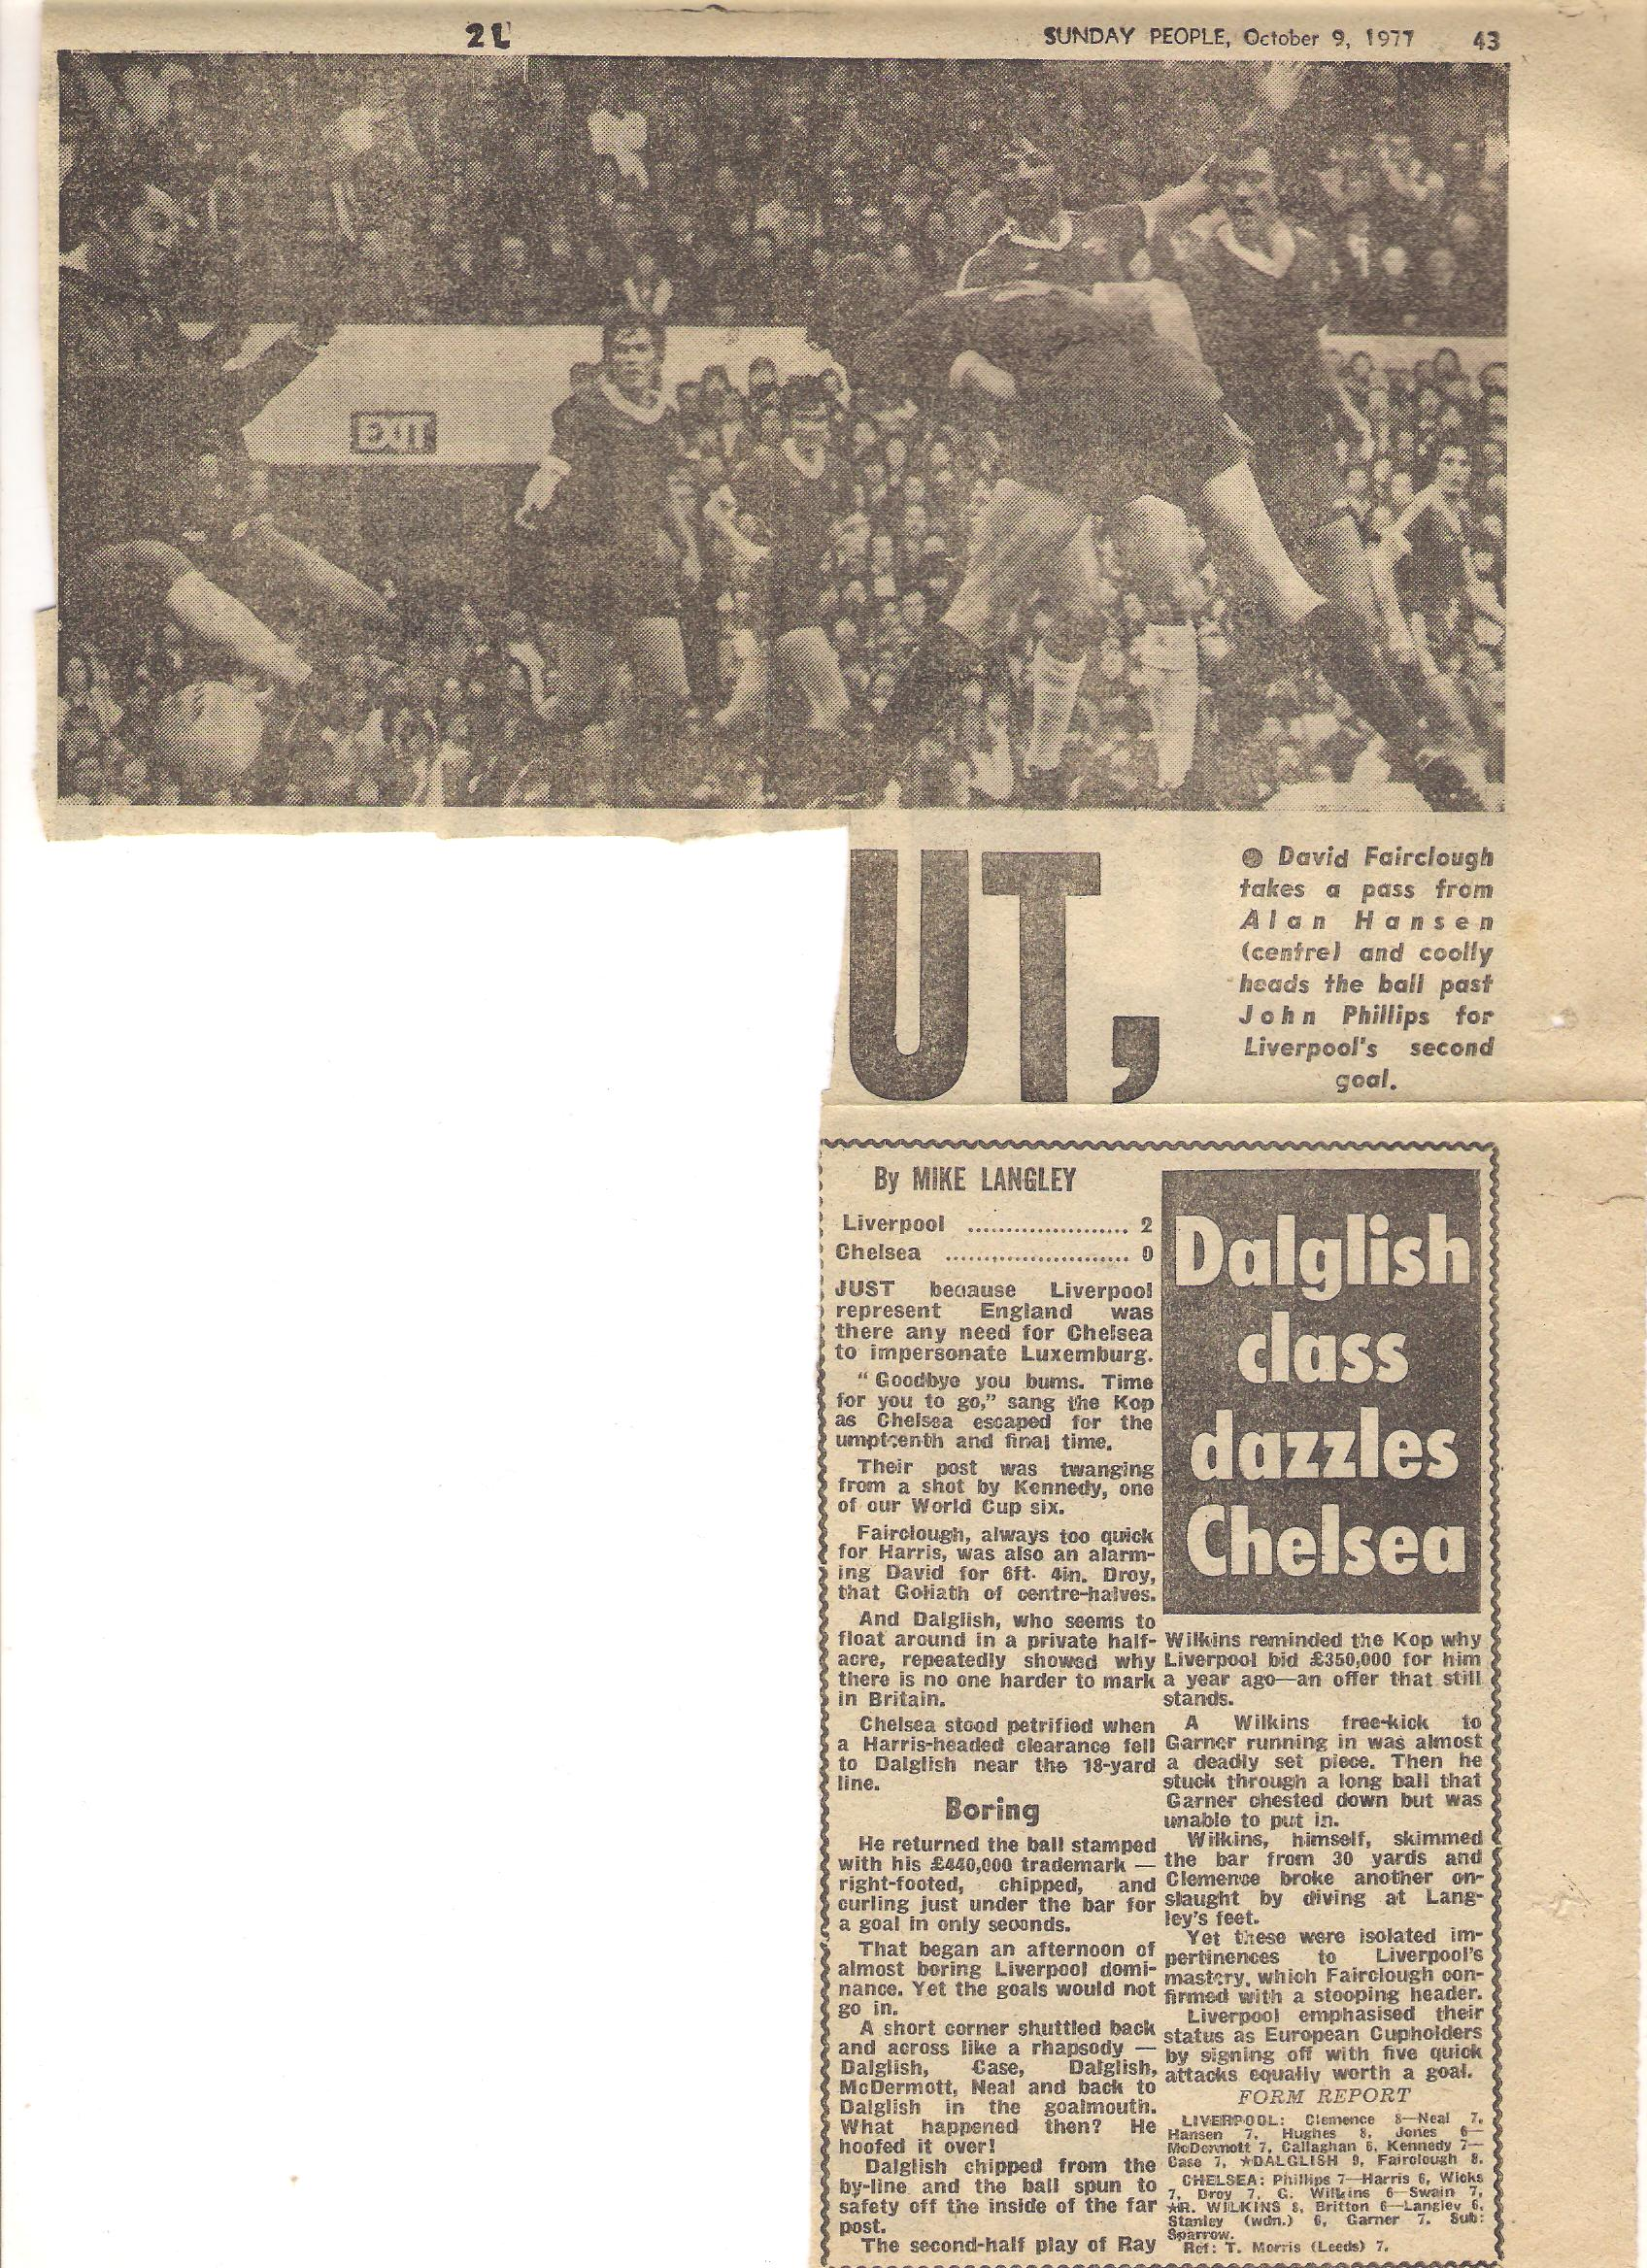 Dalglish class dazzles Chelsea - 8 October 1977